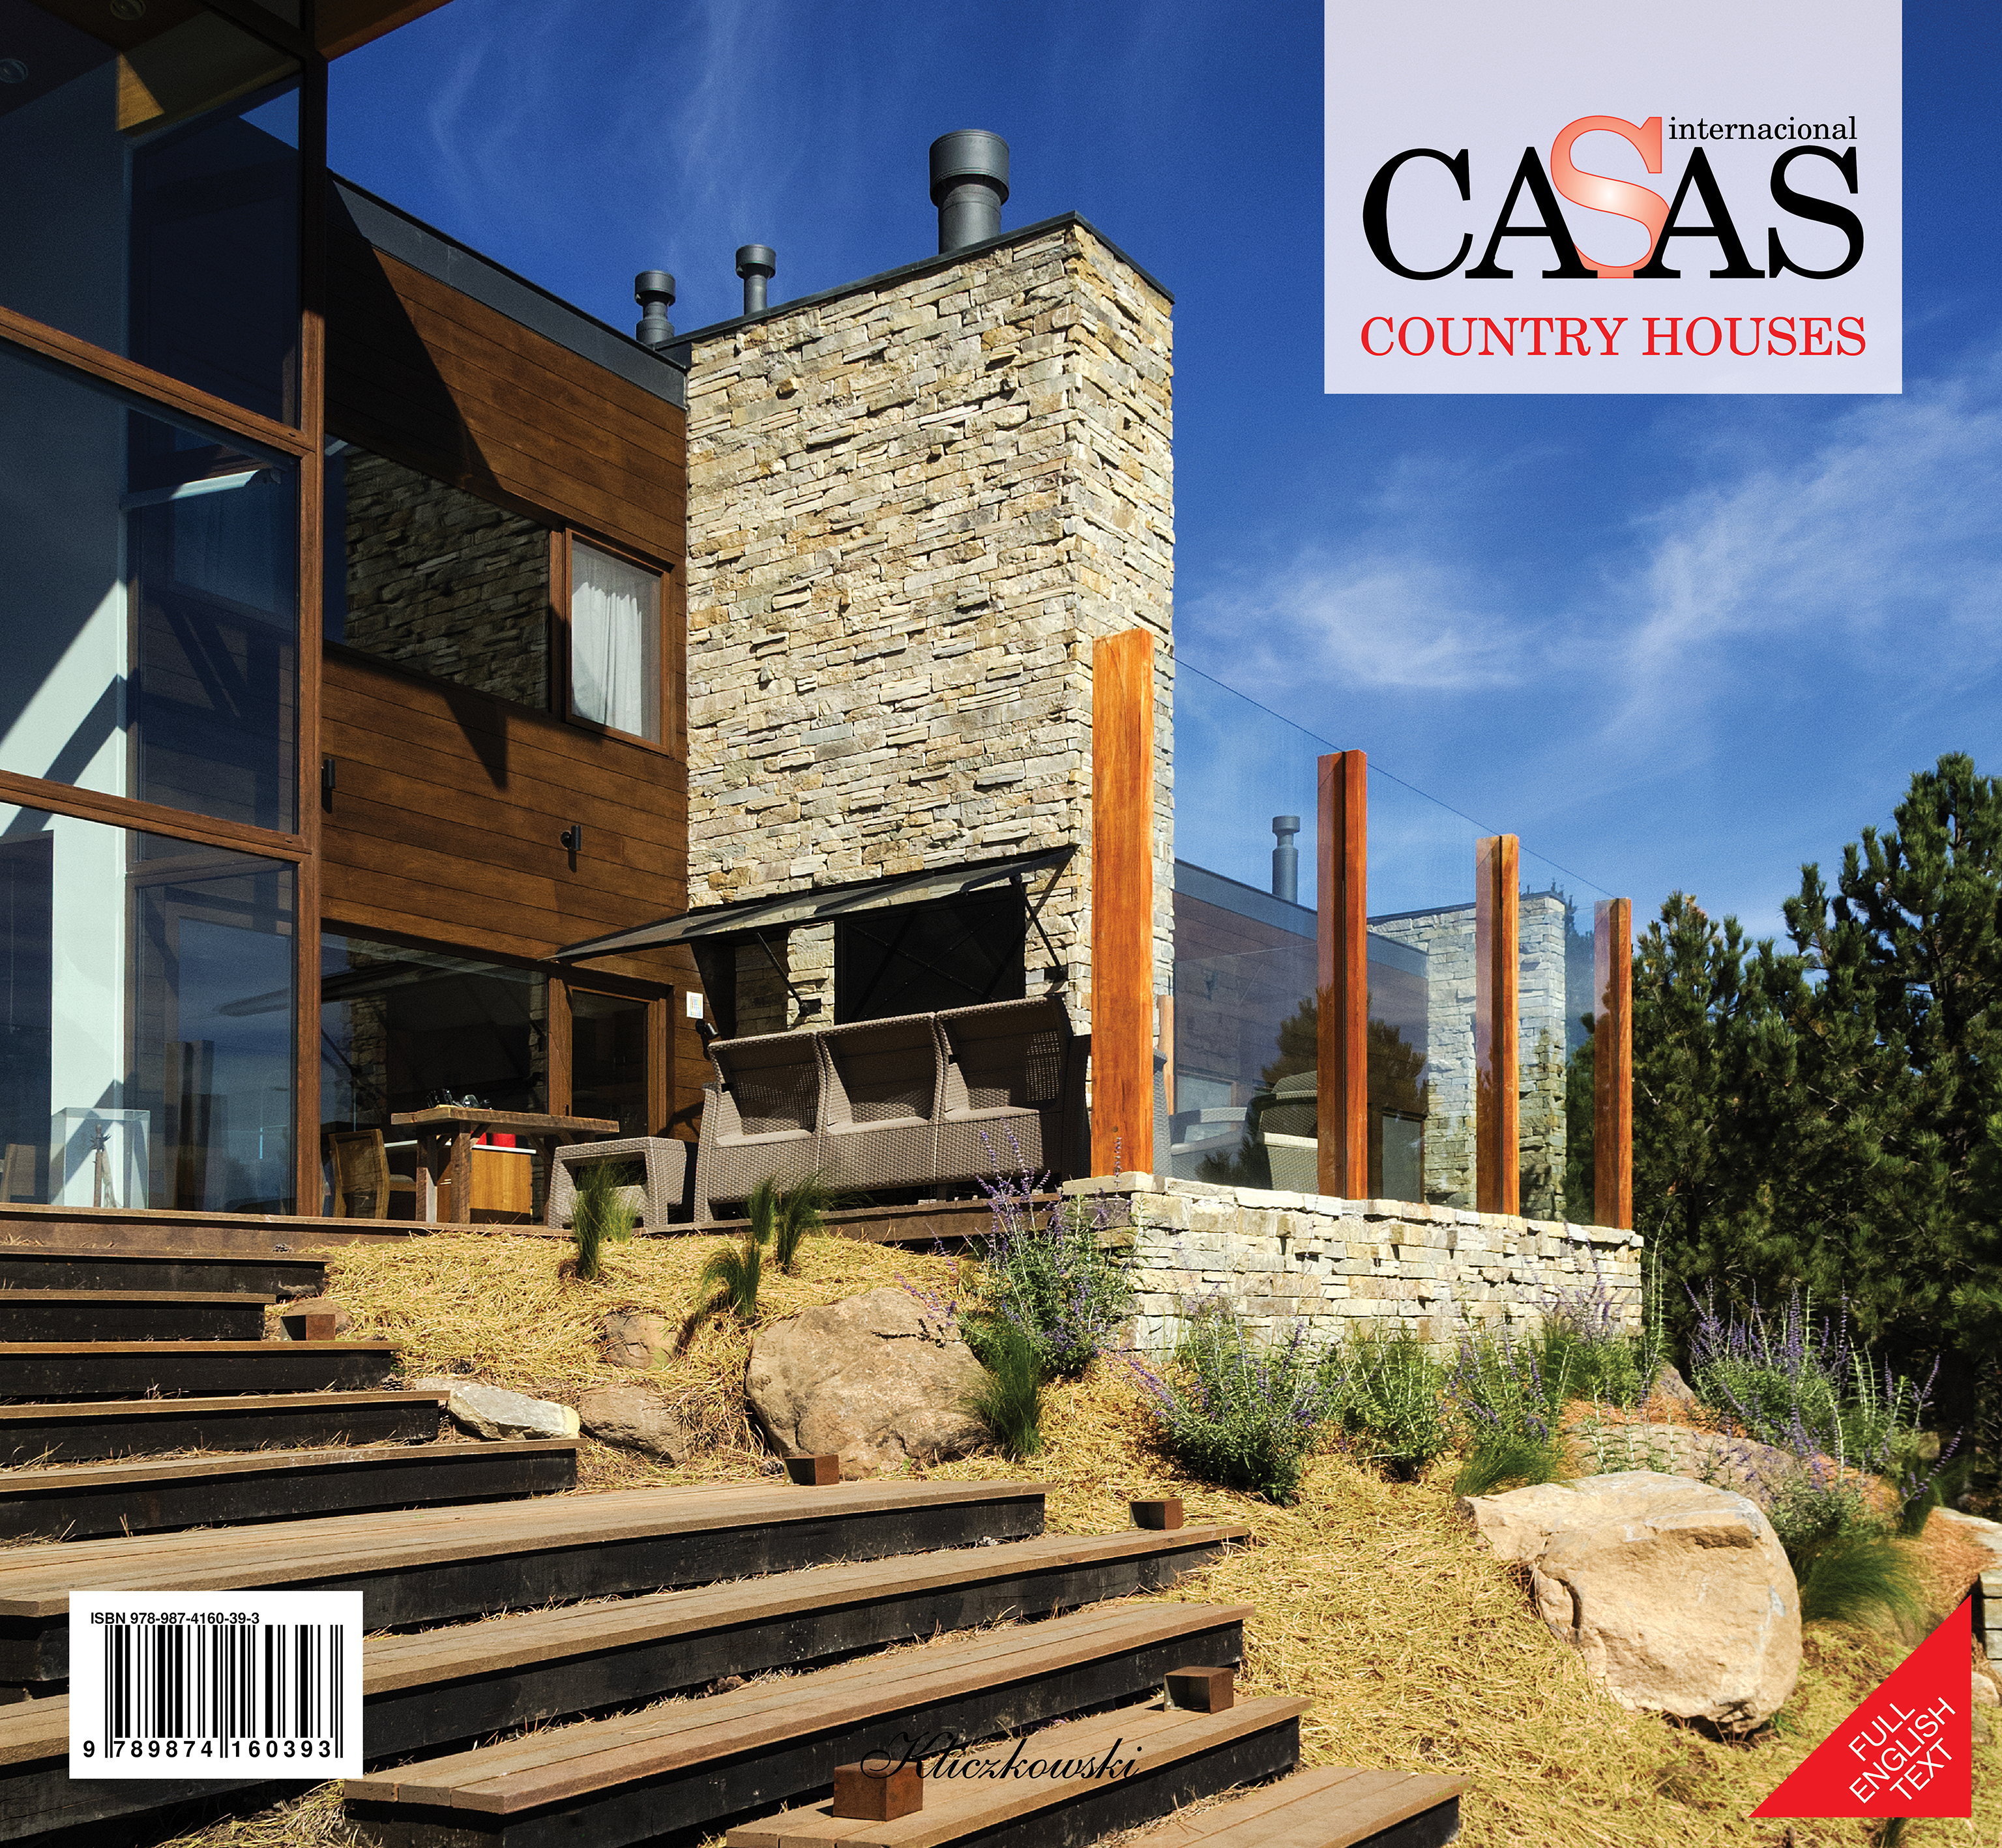 CASAS INTERNACIONAL 166 COUNTRY HOUSES